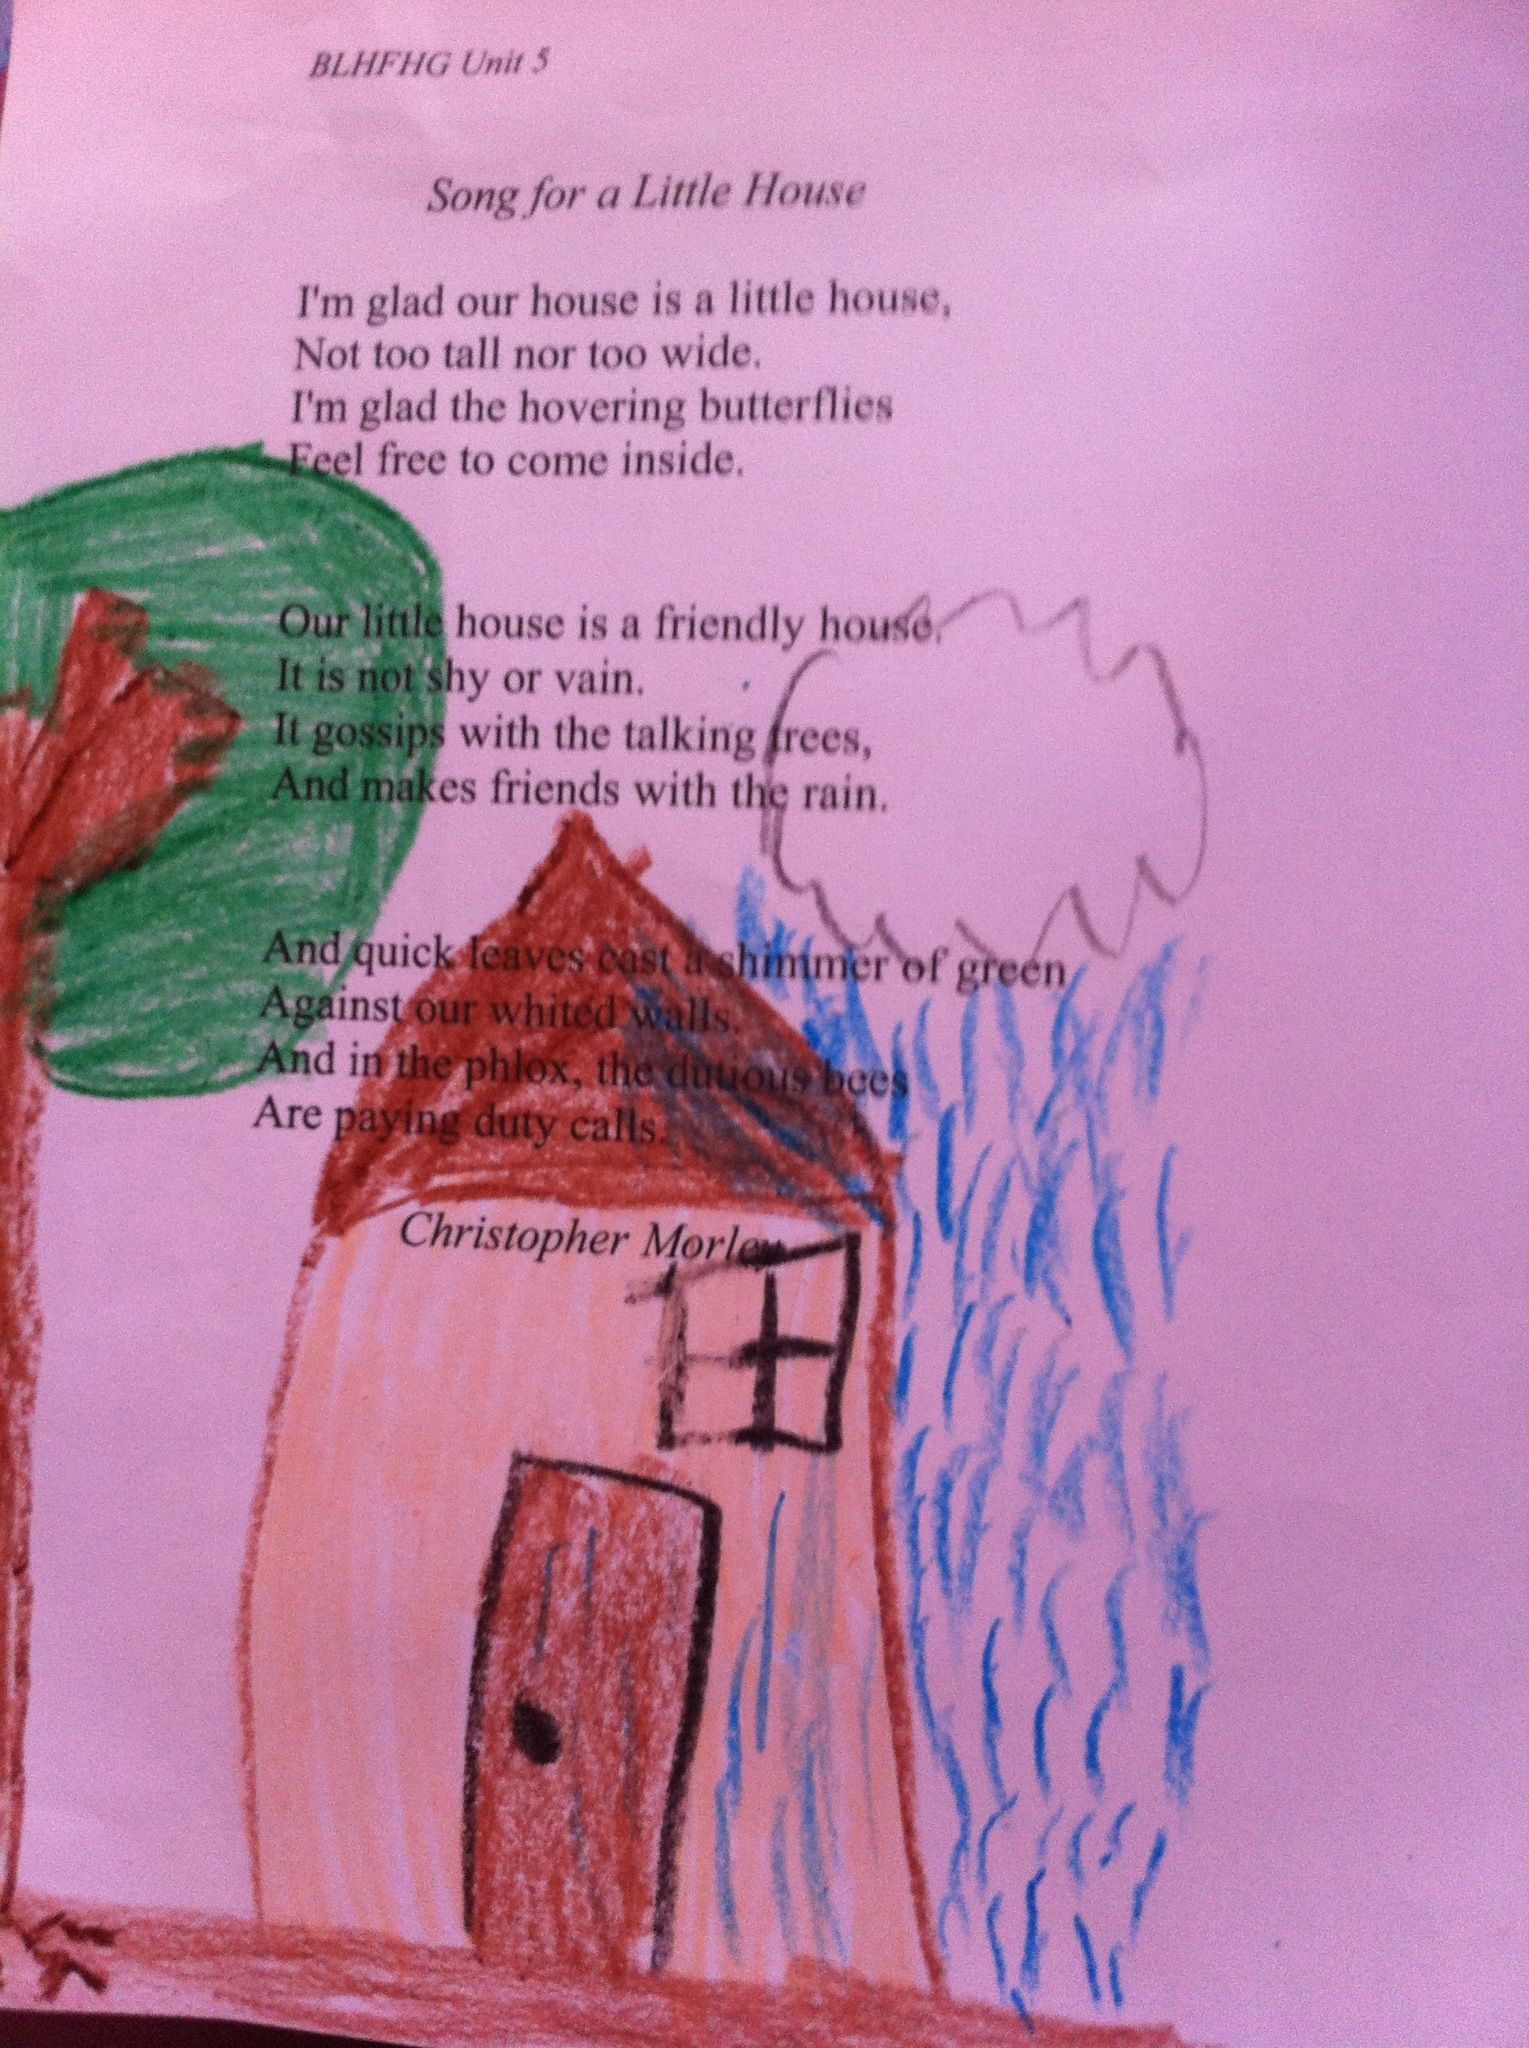 Unit 5 PoemSong for a little house by Christopher Morley Heart